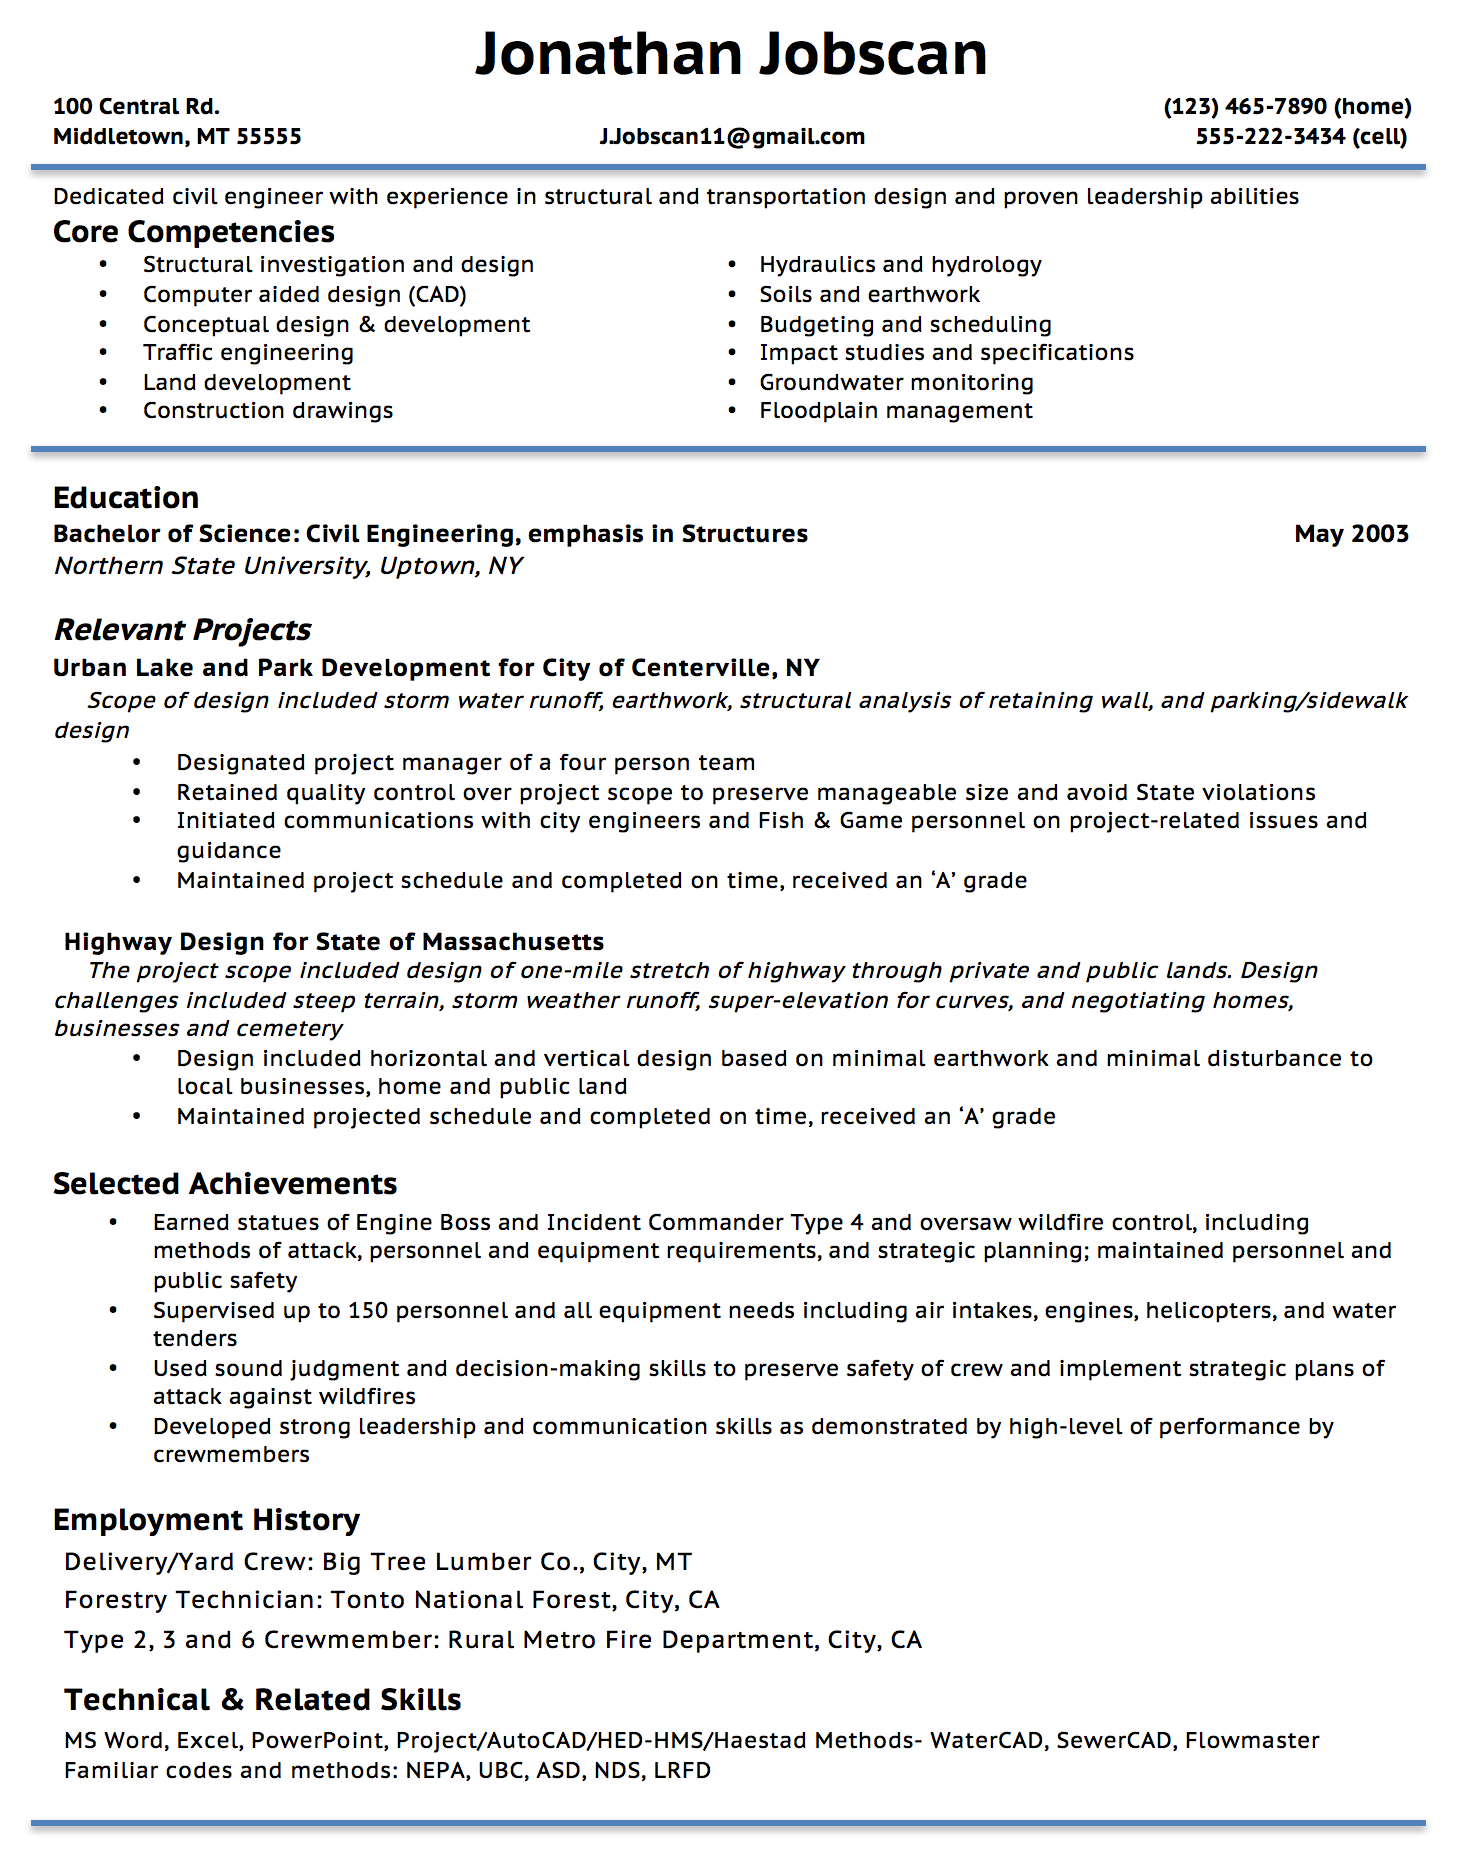 Opposenewapstandardsus  Stunning Resume Writing Guide  Jobscan With Entrancing Example Of A Functional Resume Format With Alluring Resume Objective For Part Time Job Also Actors Resumes In Addition Realtor Job Description For Resume And Good Qualities To Put On Resume As Well As Free Downloadable Resumes Additionally Commercial Property Manager Resume From Jobscanco With Opposenewapstandardsus  Entrancing Resume Writing Guide  Jobscan With Alluring Example Of A Functional Resume Format And Stunning Resume Objective For Part Time Job Also Actors Resumes In Addition Realtor Job Description For Resume From Jobscanco